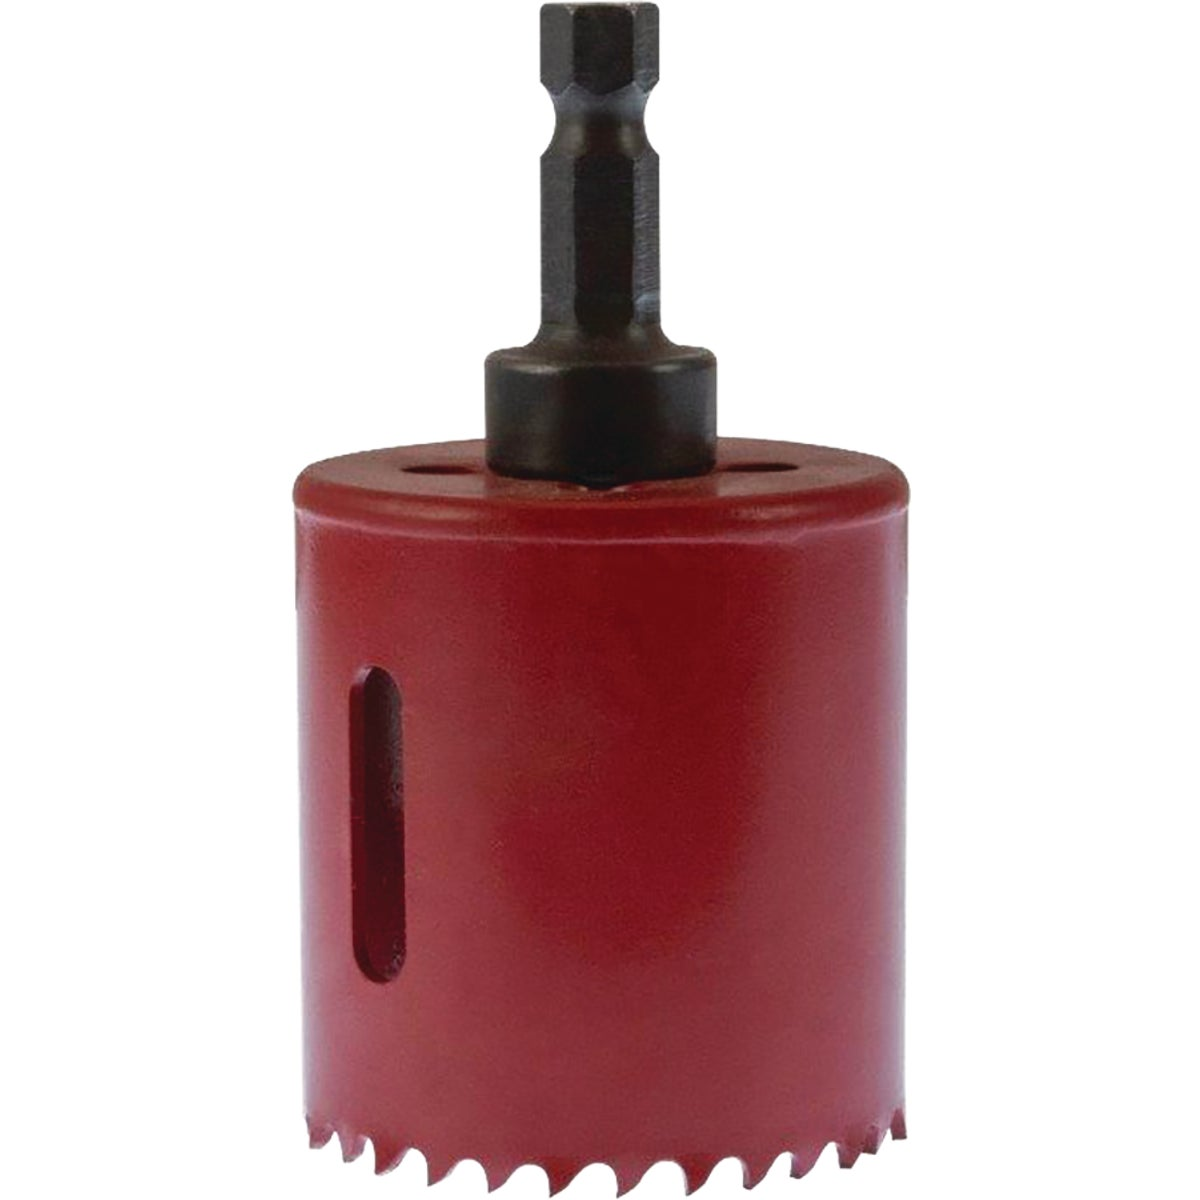 "2-1/4"" HOLE SAW - 325112 by M K Morse Co"